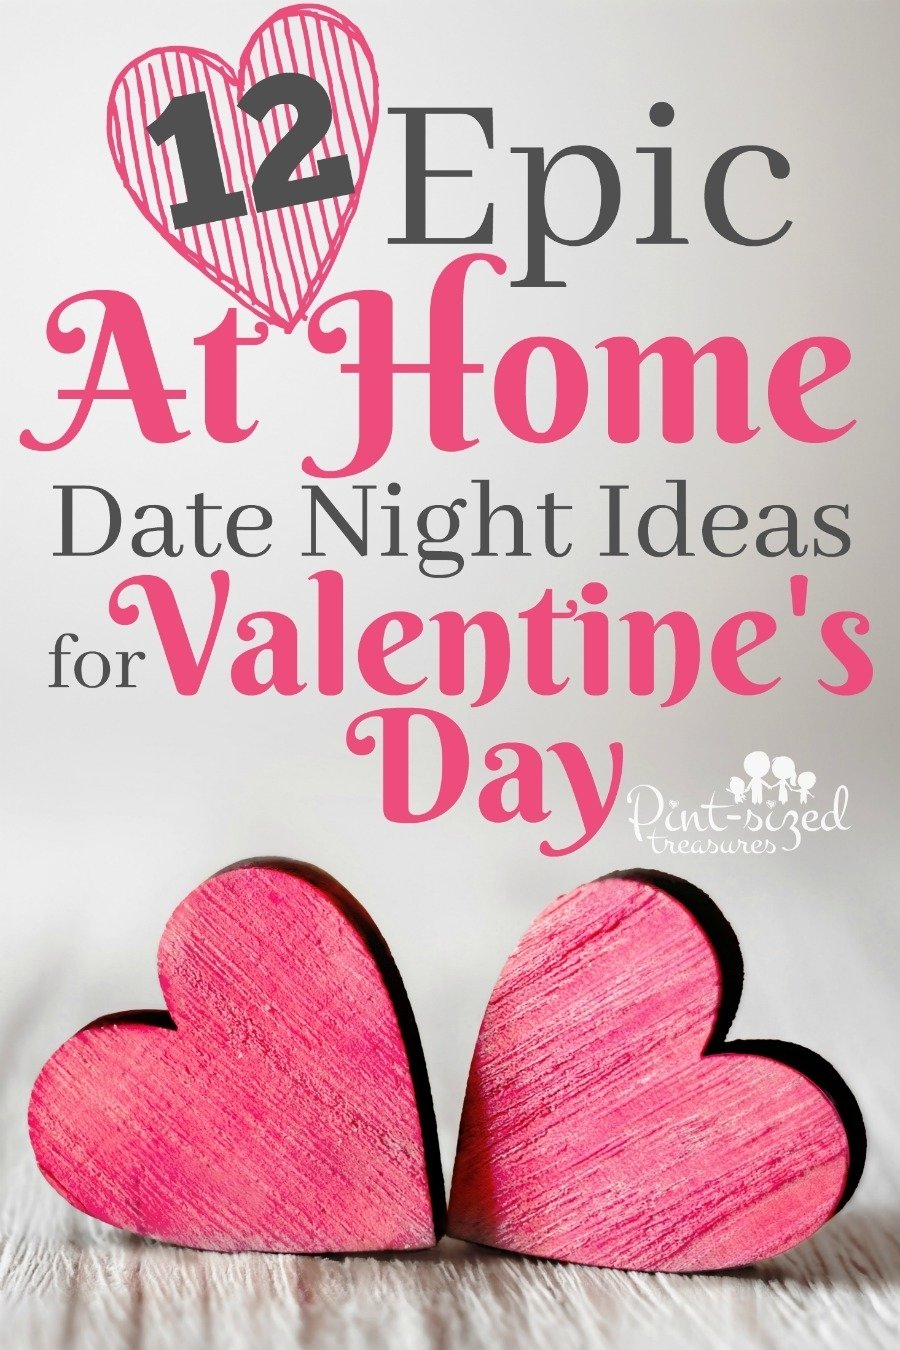 10 Fashionable Date Ideas For Valentines Day 12 epic at home date night ideas for valentines day c2b7 pint sized 1 2020